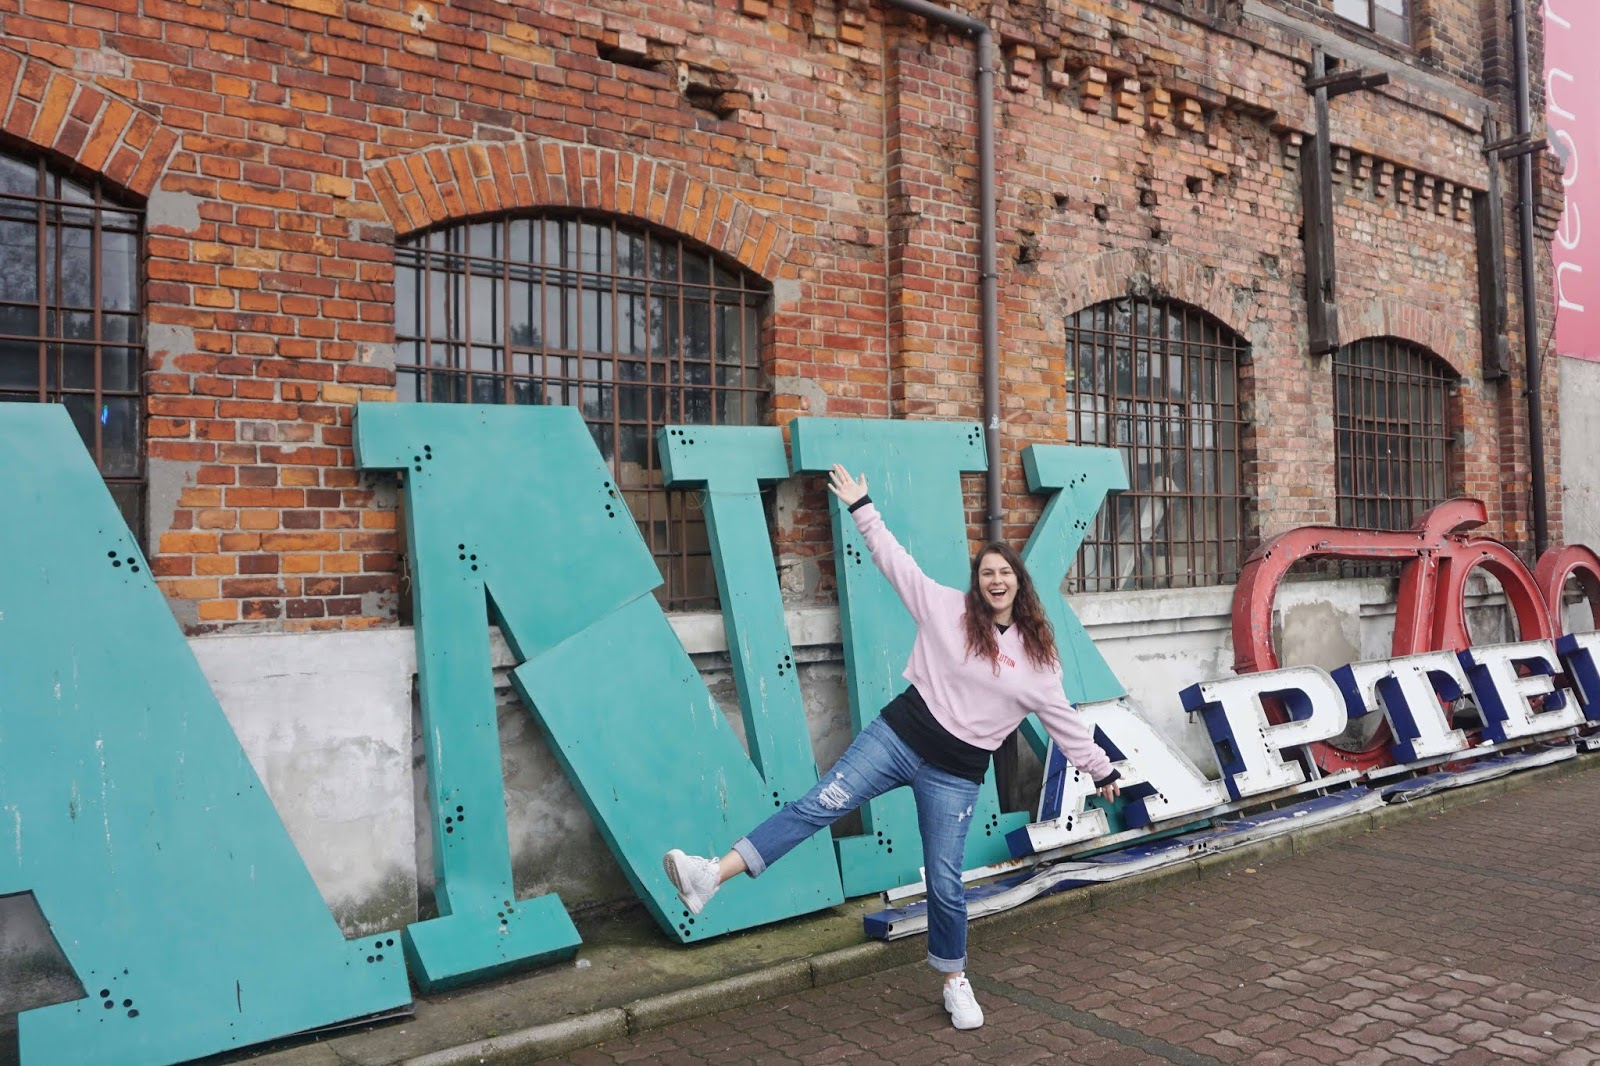 Neon Museum Warsawa Things to do in Warsaw, Poland sightseeing options